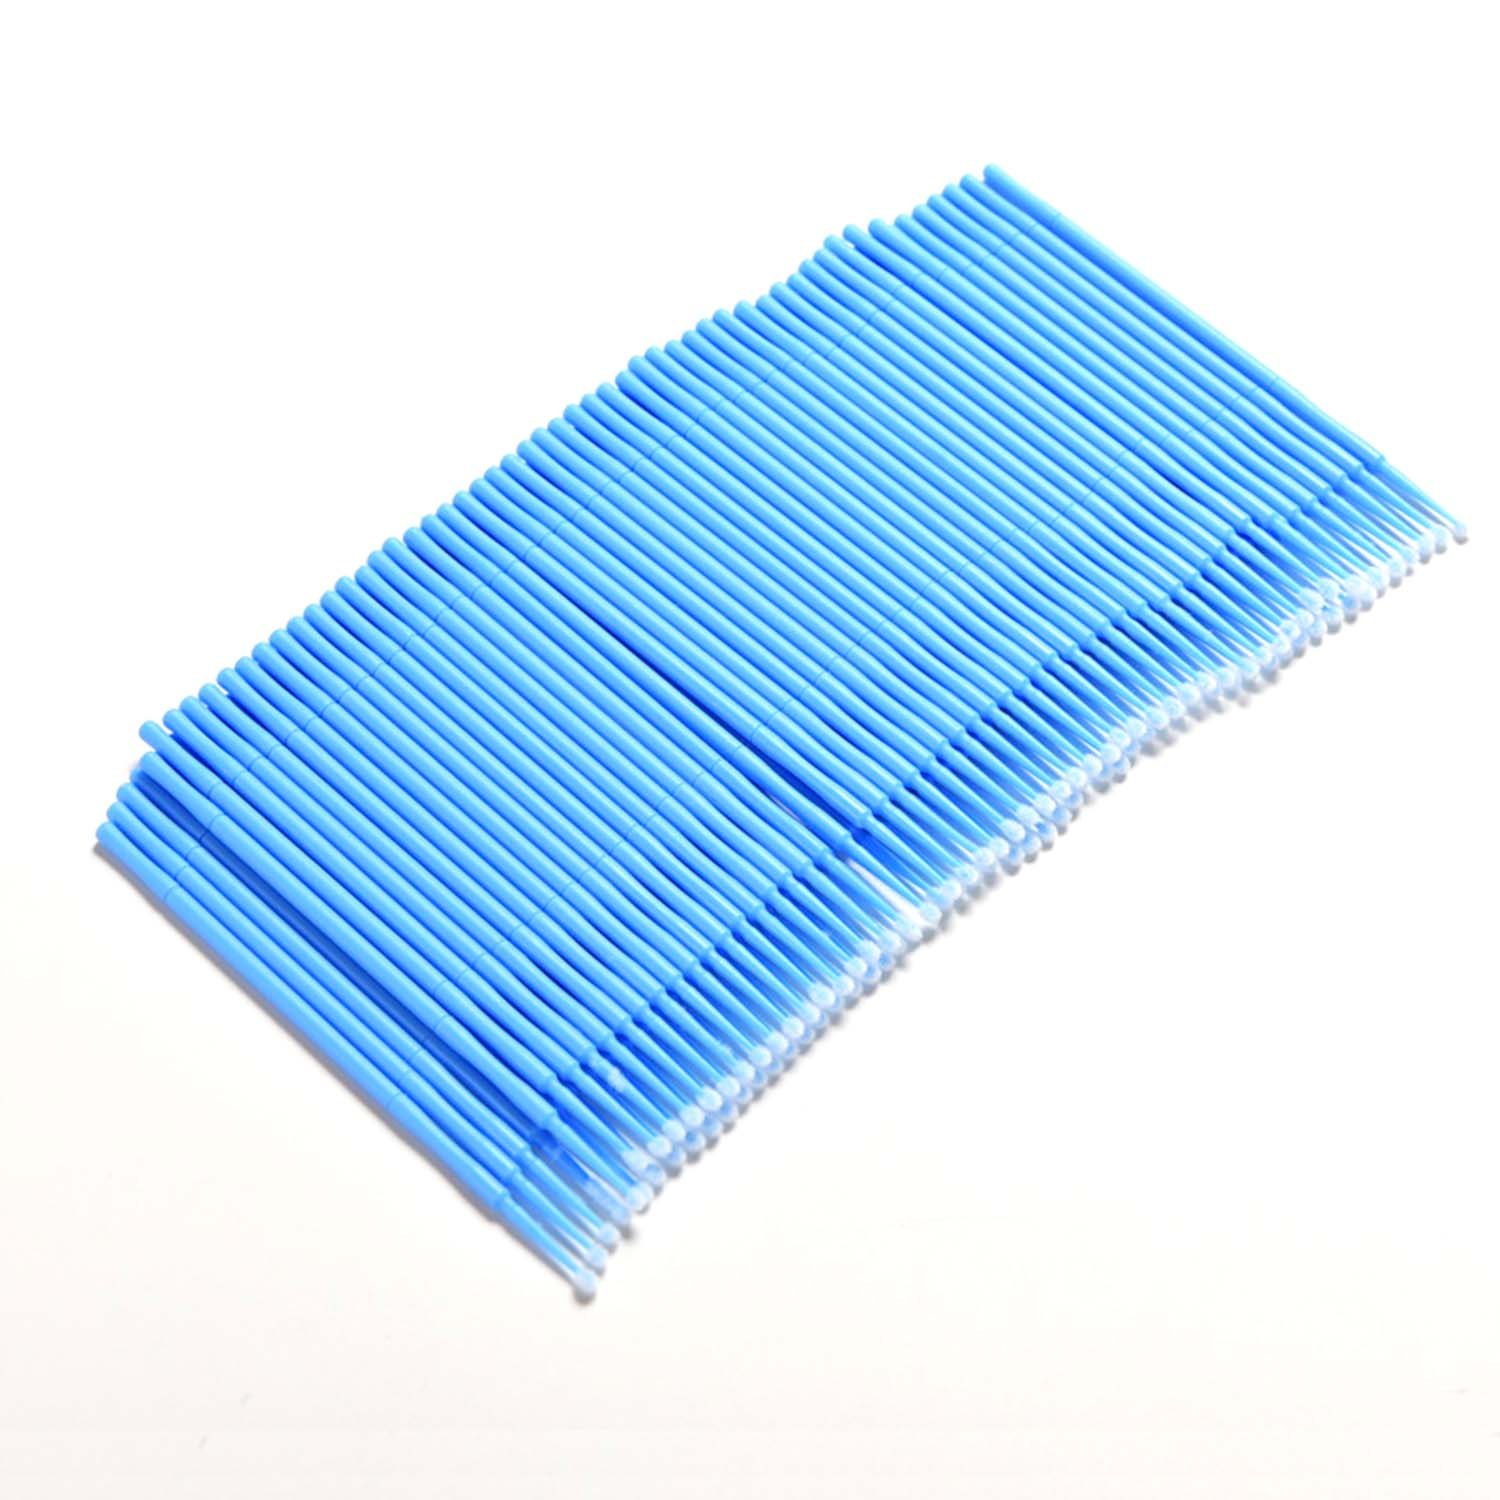 Elisona-100 PCS Disposable Makeup Eyelash Extension Grafting Lint Free Micro Brushes Swab Mascara Wands Applicator Lash Cosmetic Tool Blue